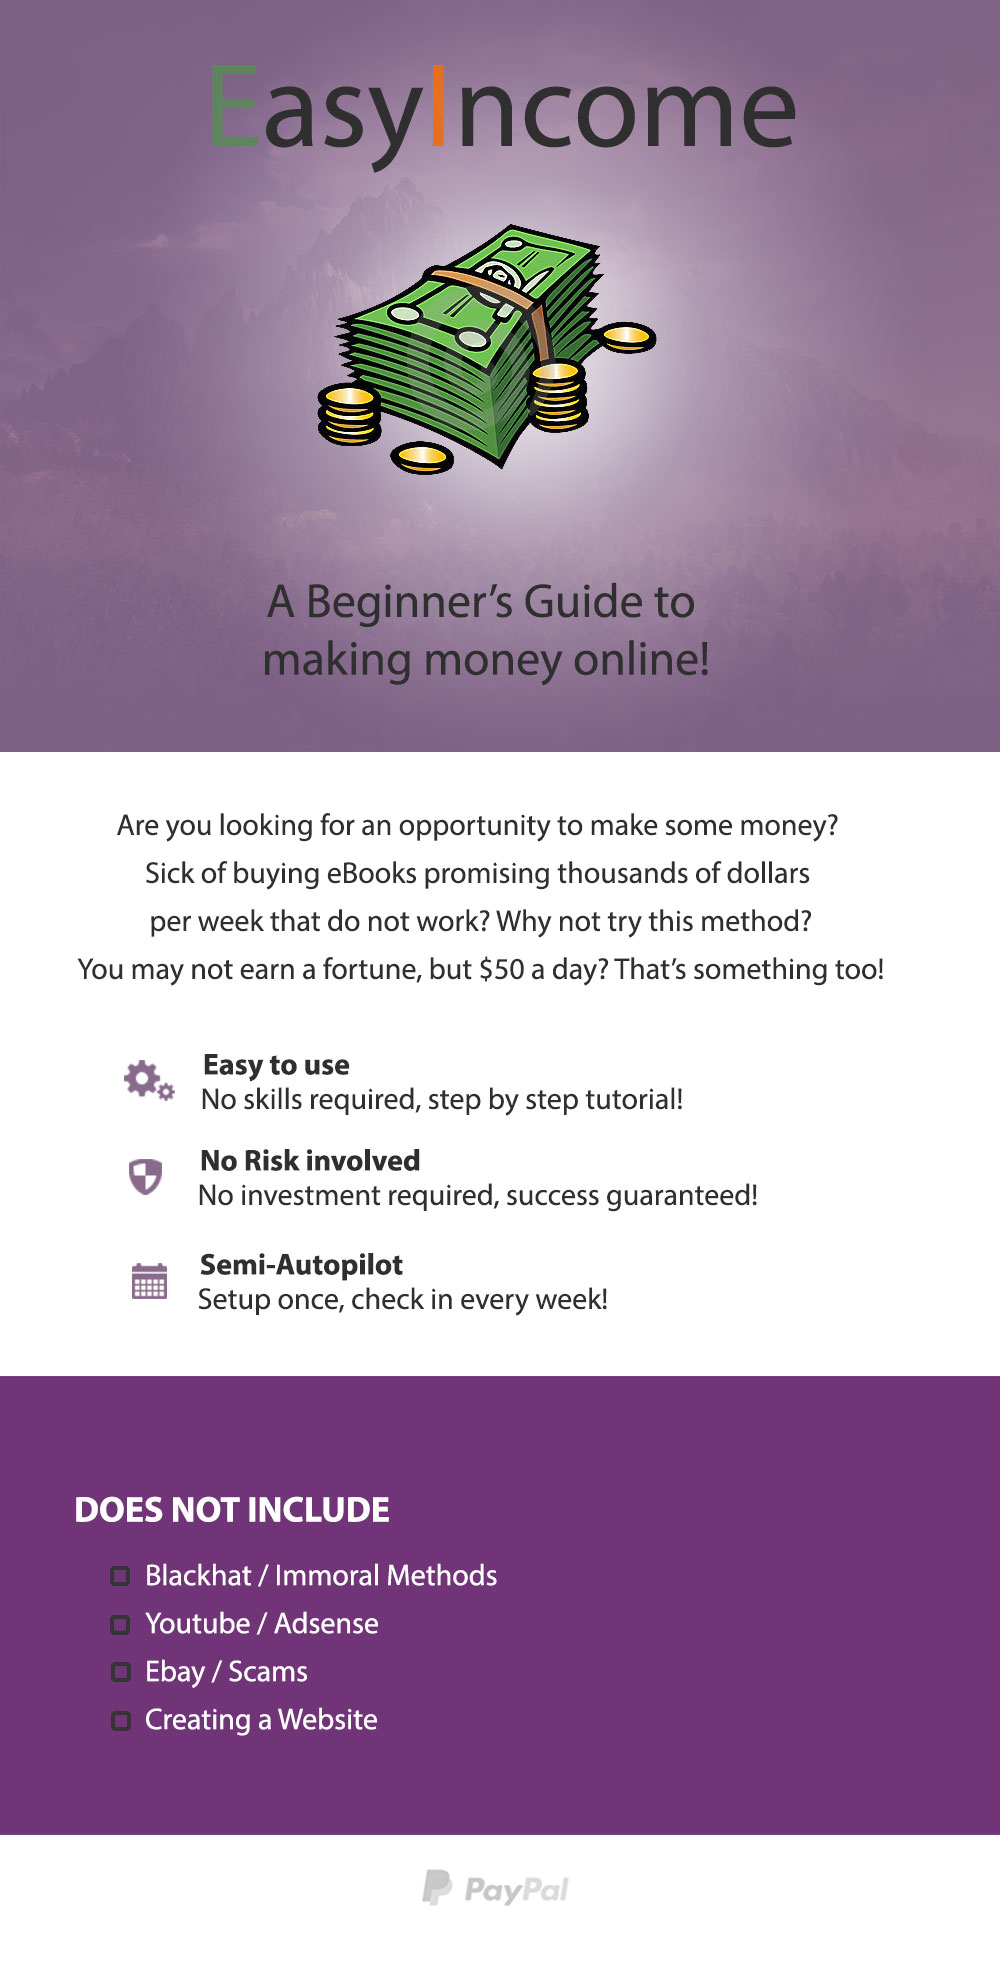 Learn how to make 50 per day working online